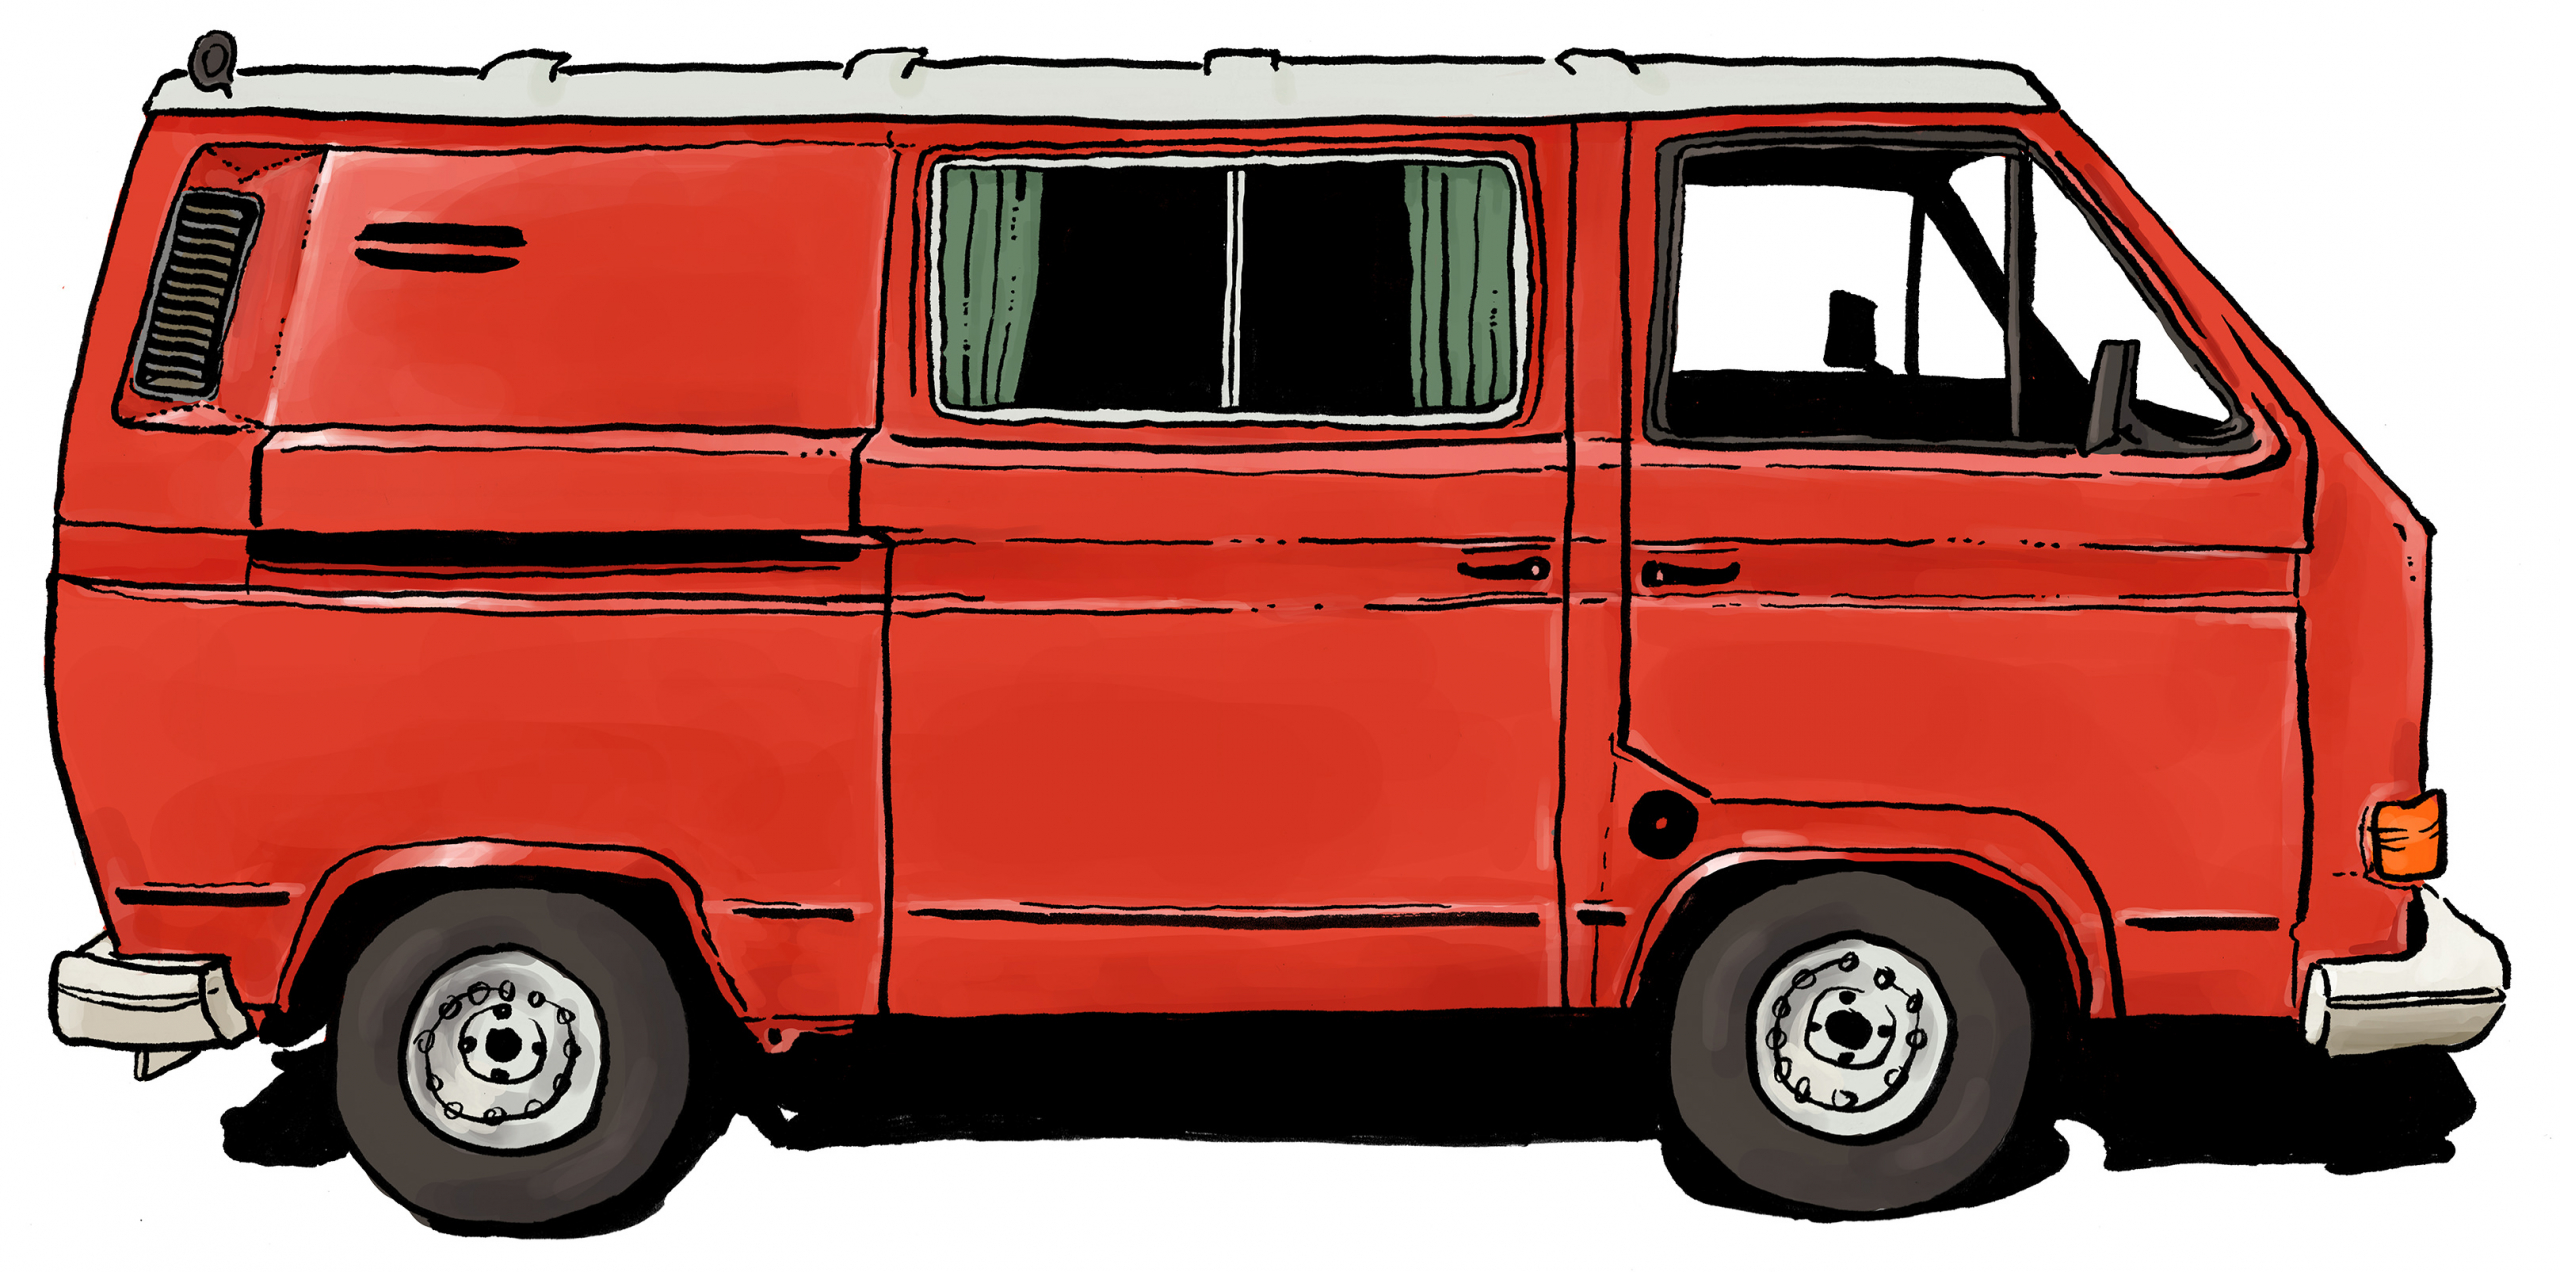 An older model red VW bus from the side. Within the large side door we see green curtains.